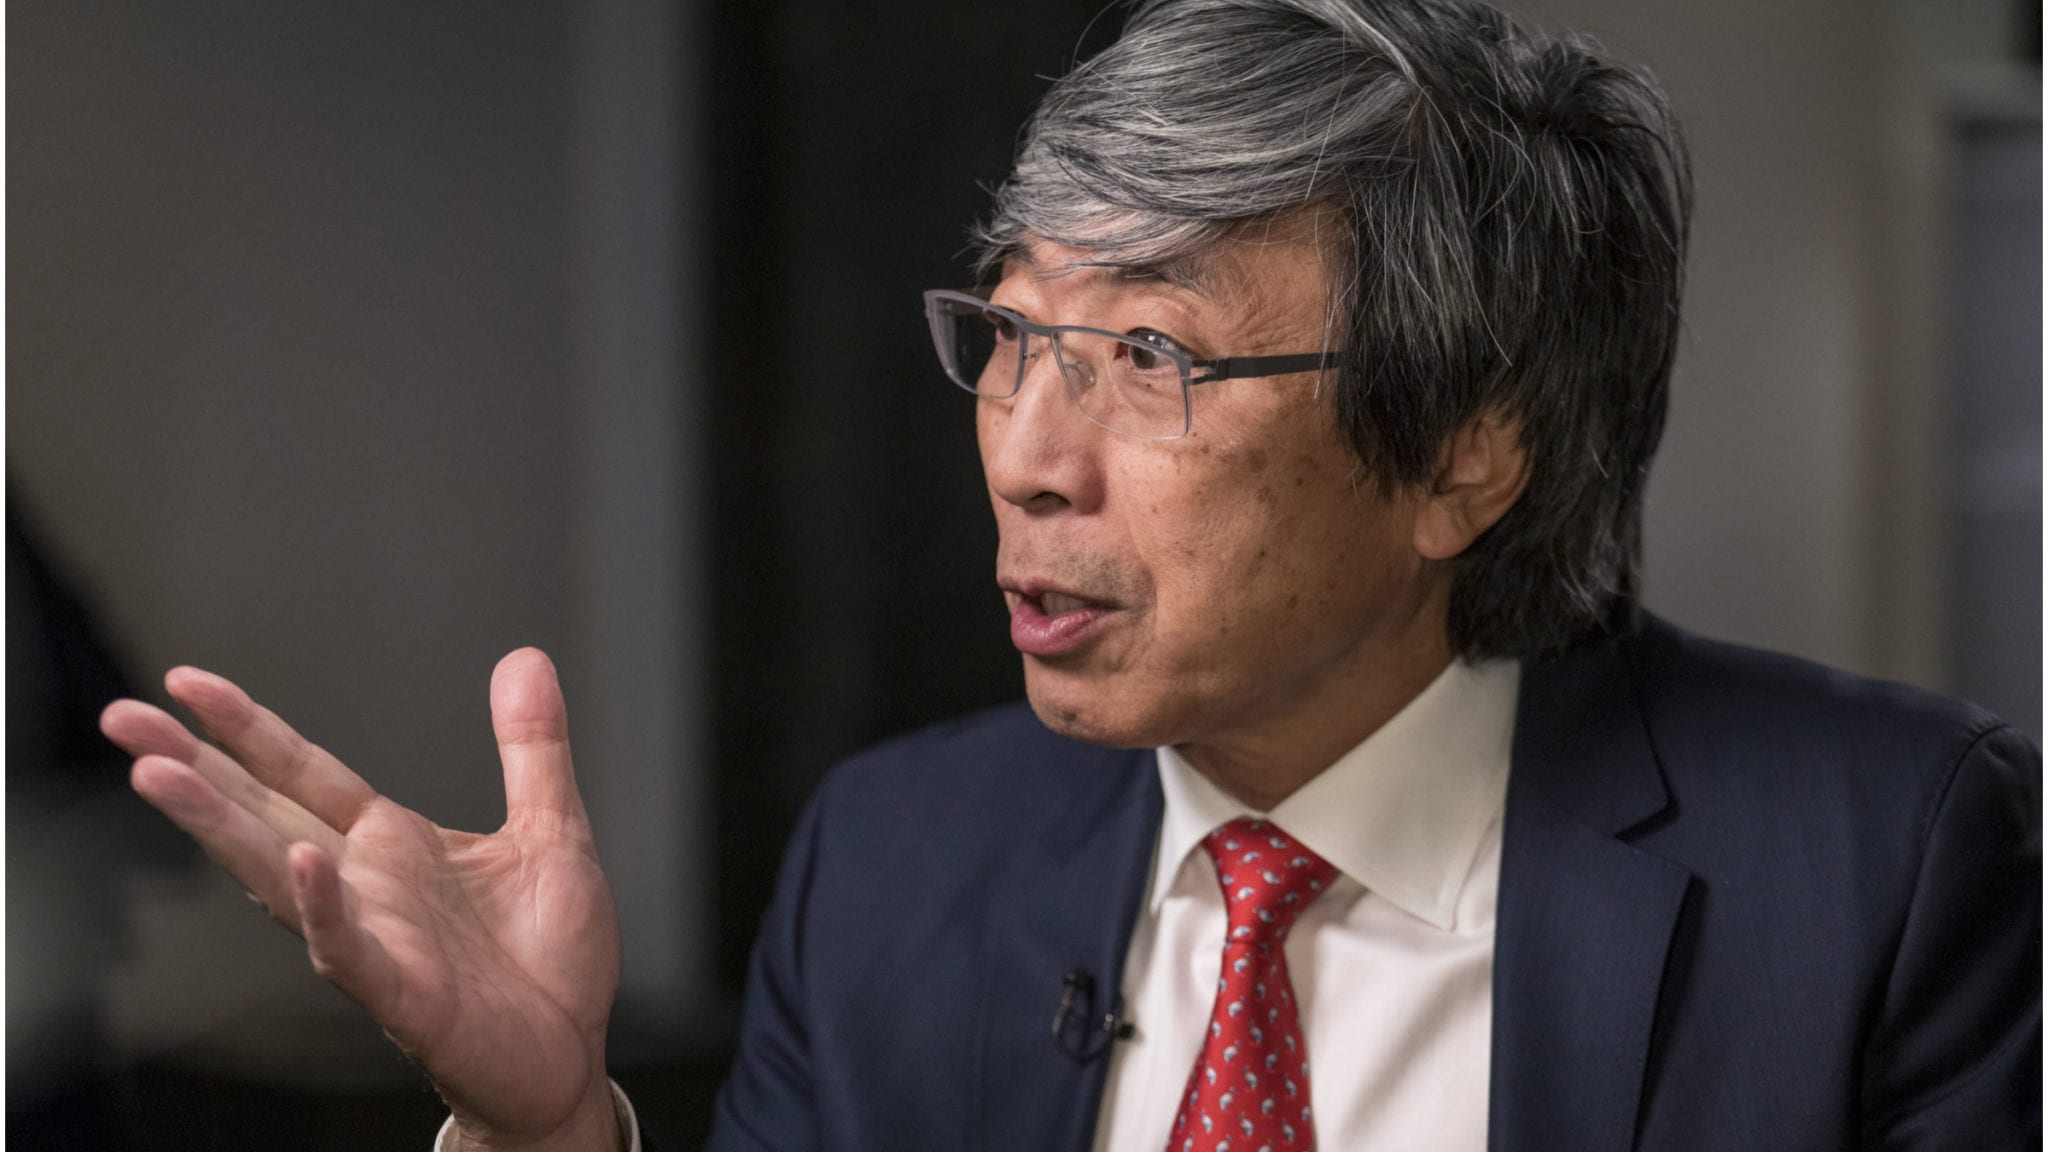 After falling behind the leaders, dissed by some experts, biotech showman Patrick Soon-Shiong finally gets his Covid-19 vaccine ready for a trial. But can it live up to the hype?